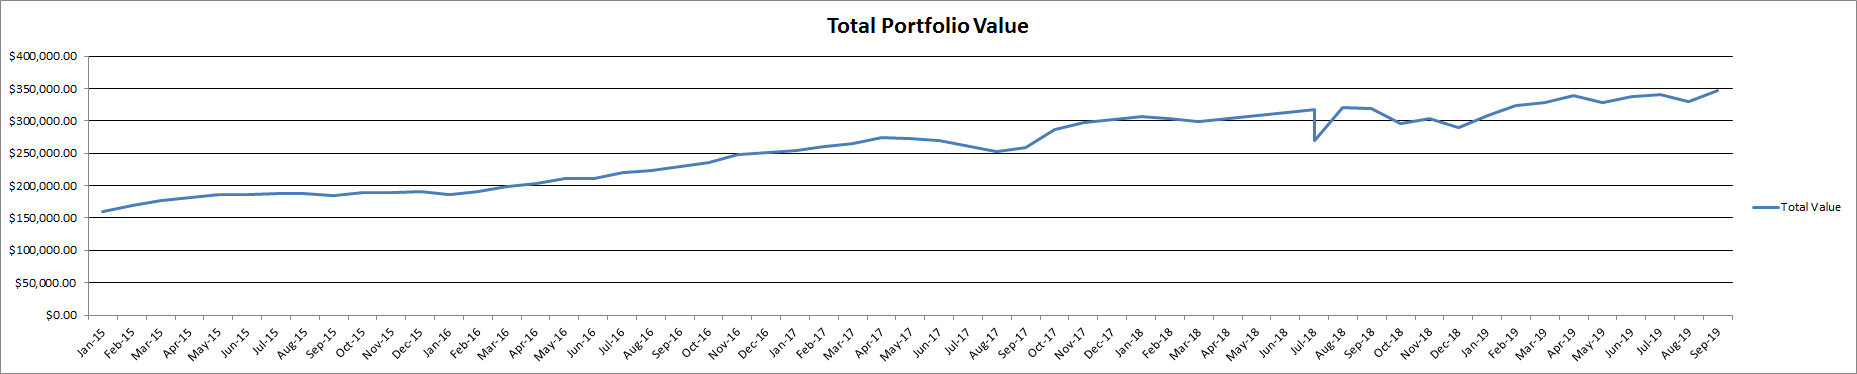 MoneyMaaster Stock Portfolio Total value